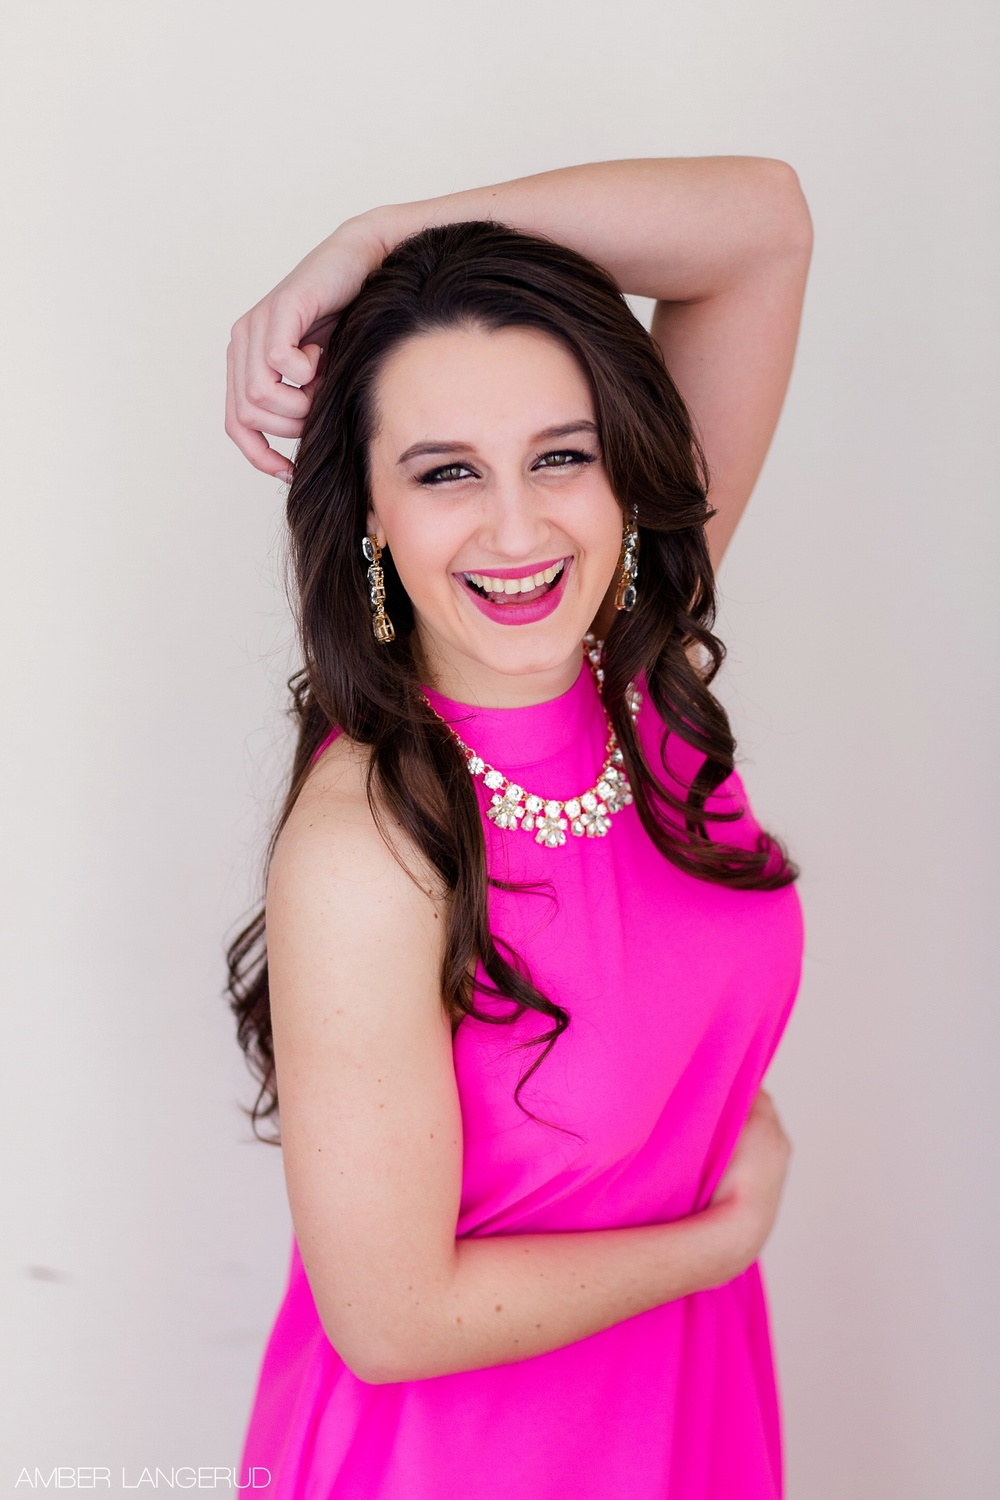 Sarah Labine Miss Northwest 2015 | Headshots by Amber Langerud Photography out of Audubon, MN